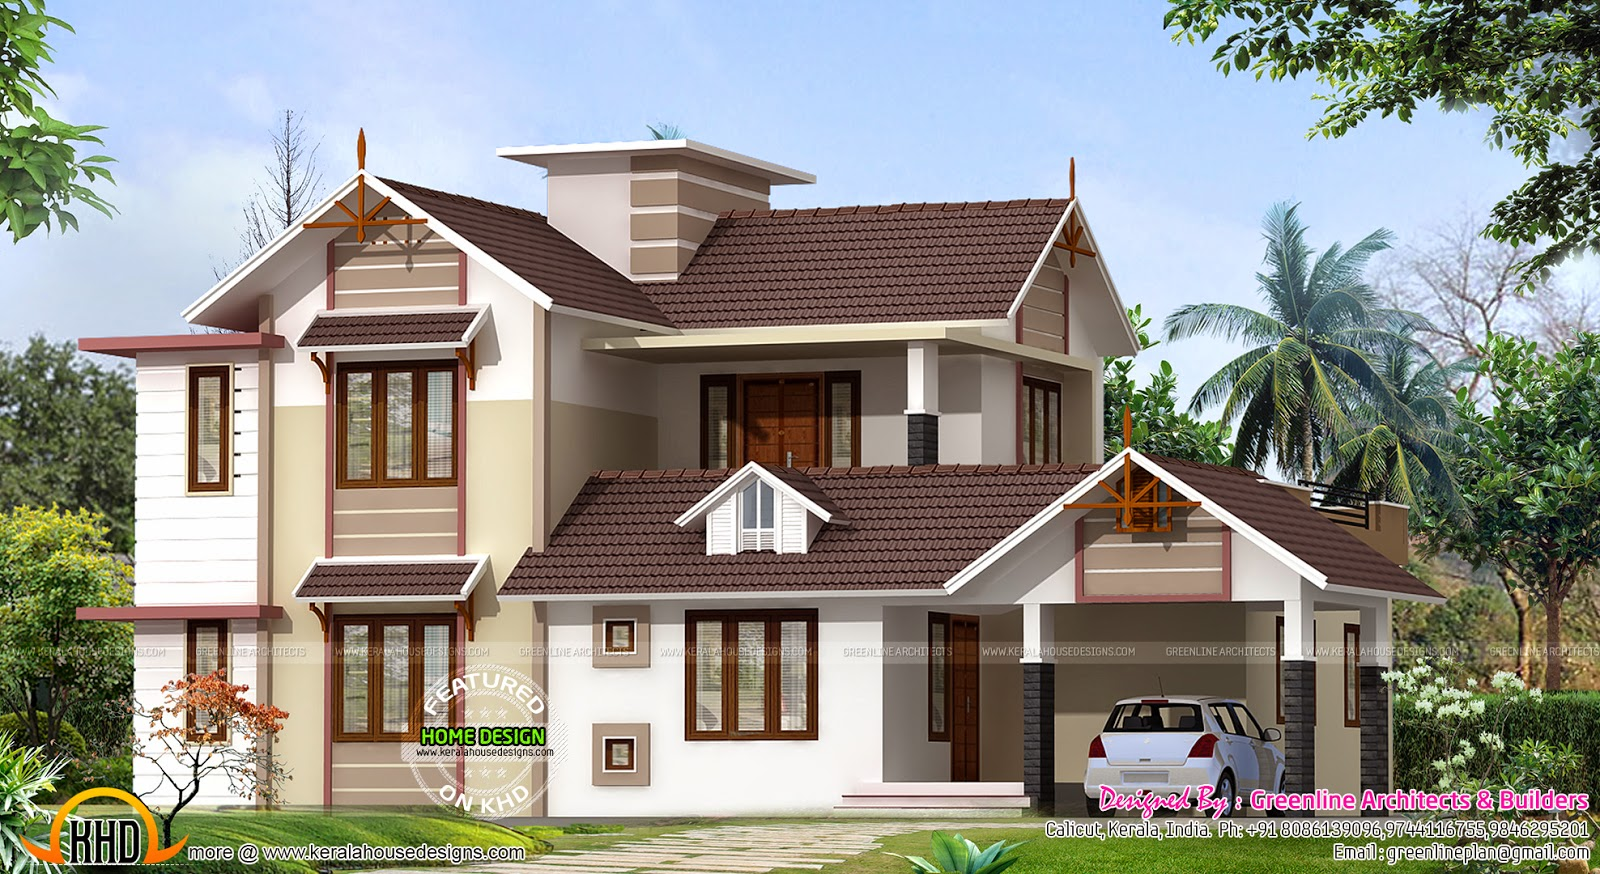 2400 sq ft new house design kerala home design and floor for New home designs